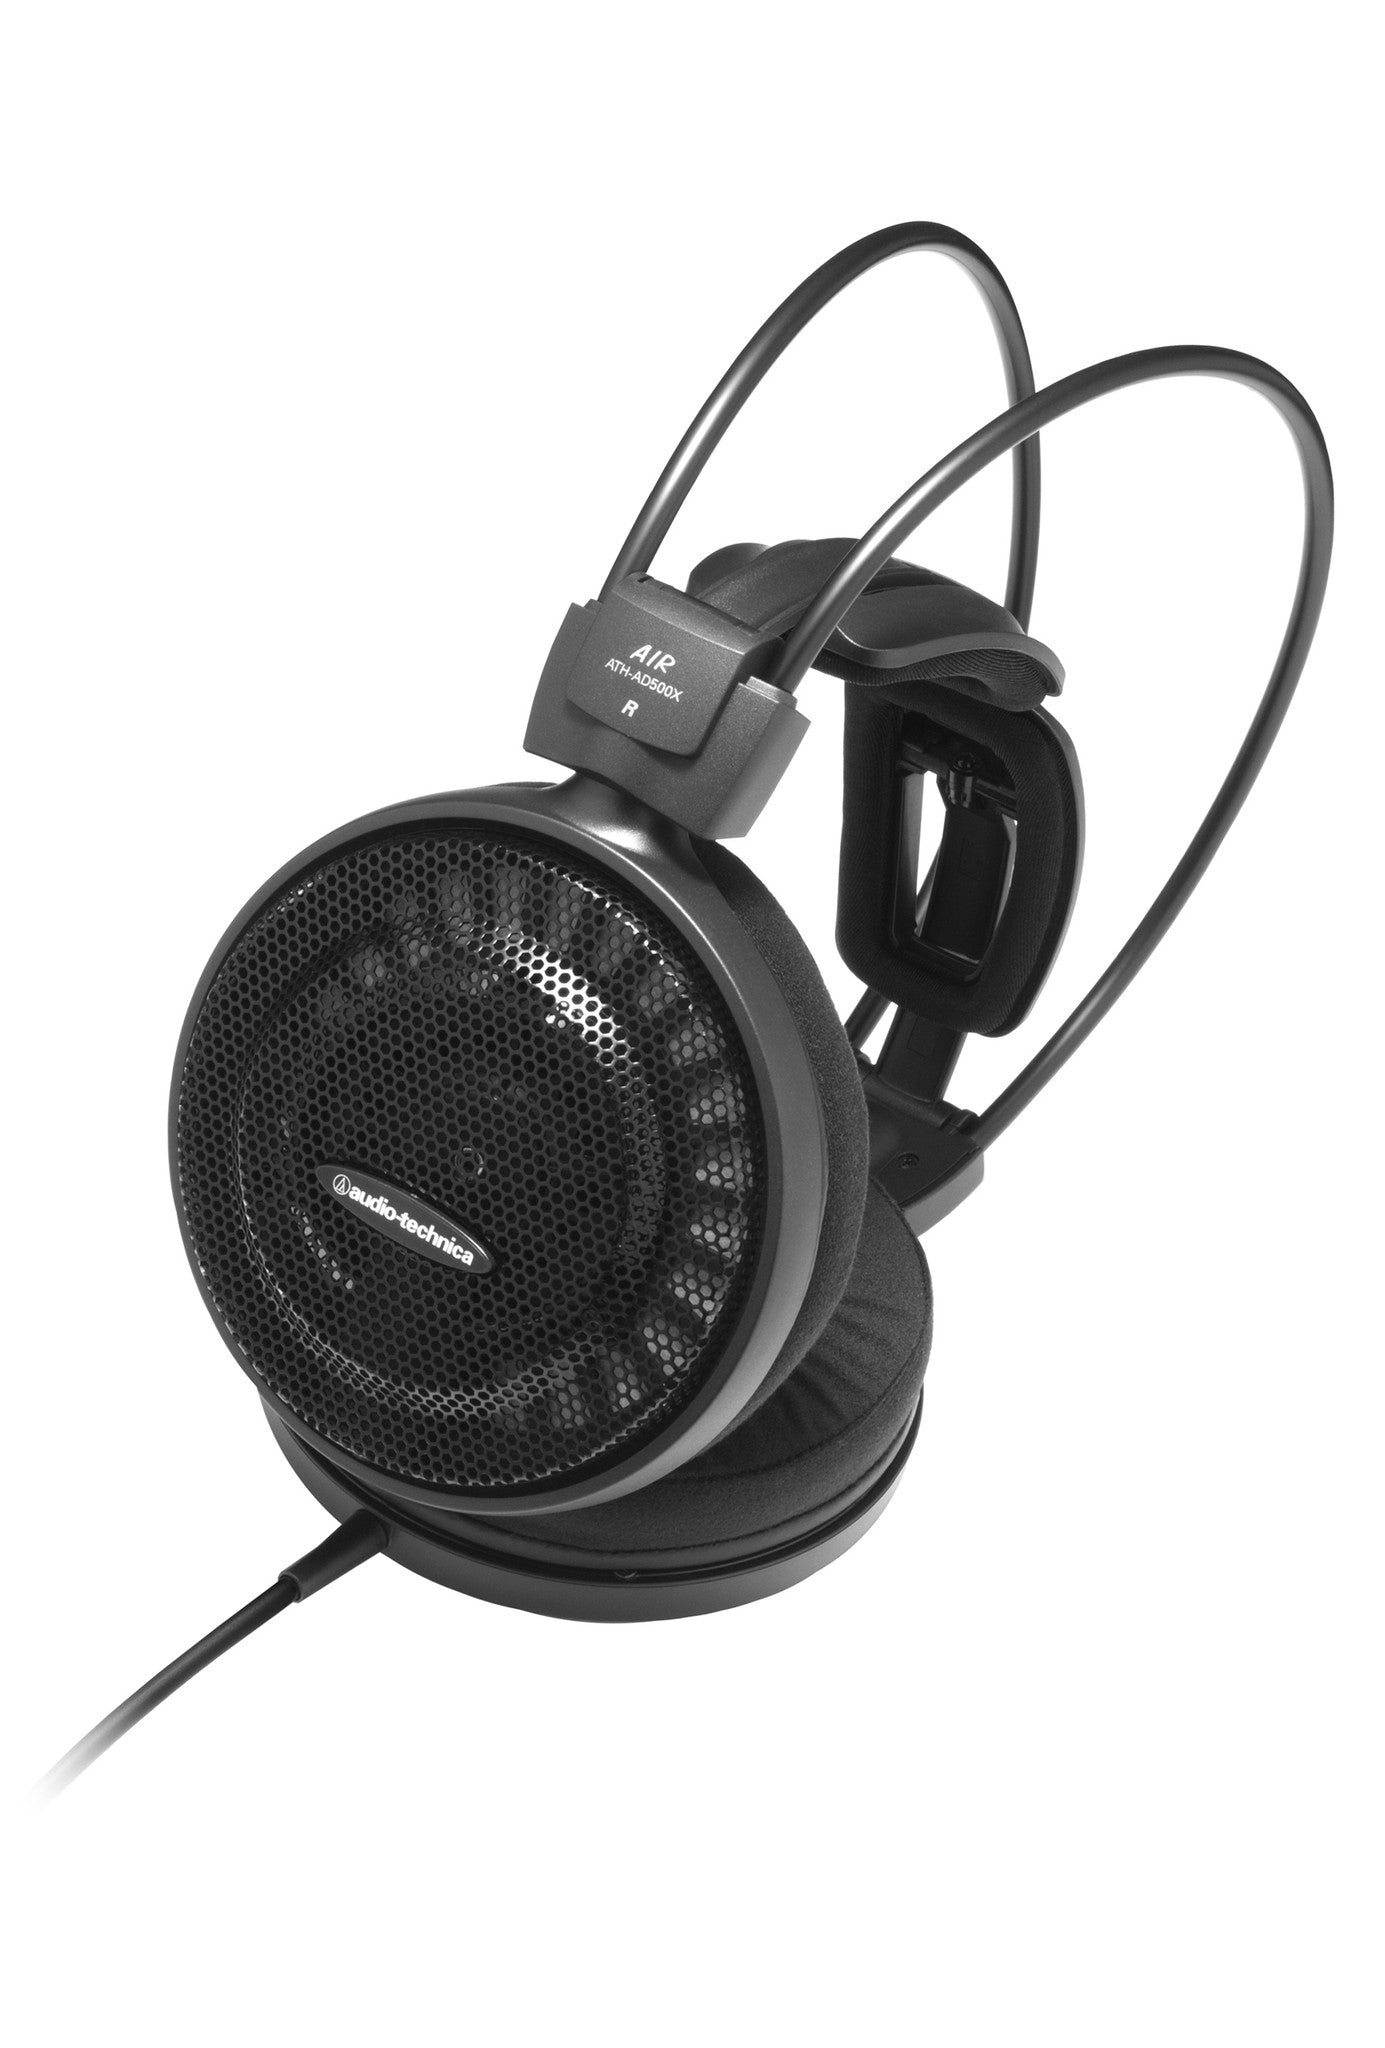 Audio Technica ATH-AD1000x Audiophile Open-Air Dynamic Headphone